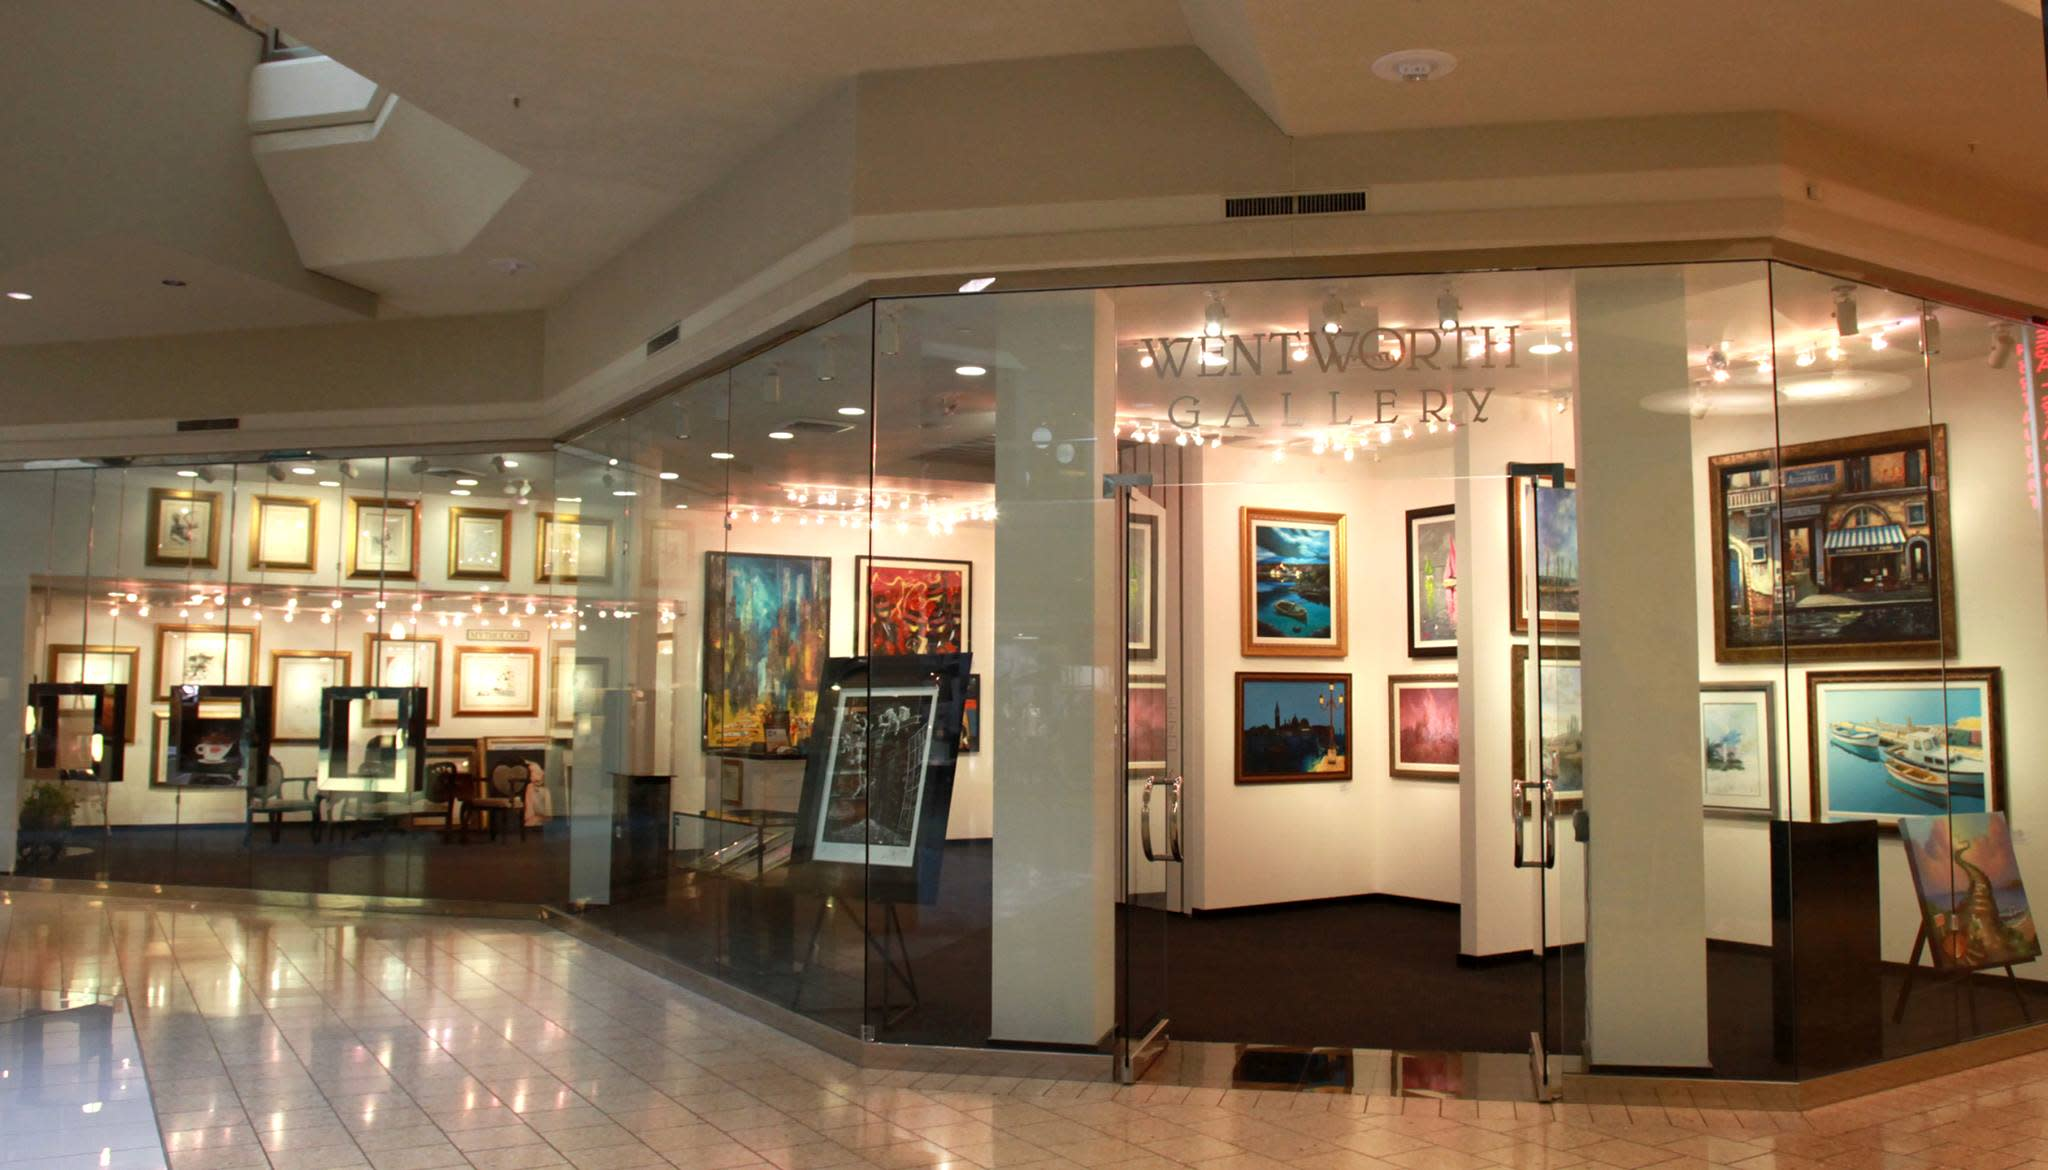 Wentworth Gallery